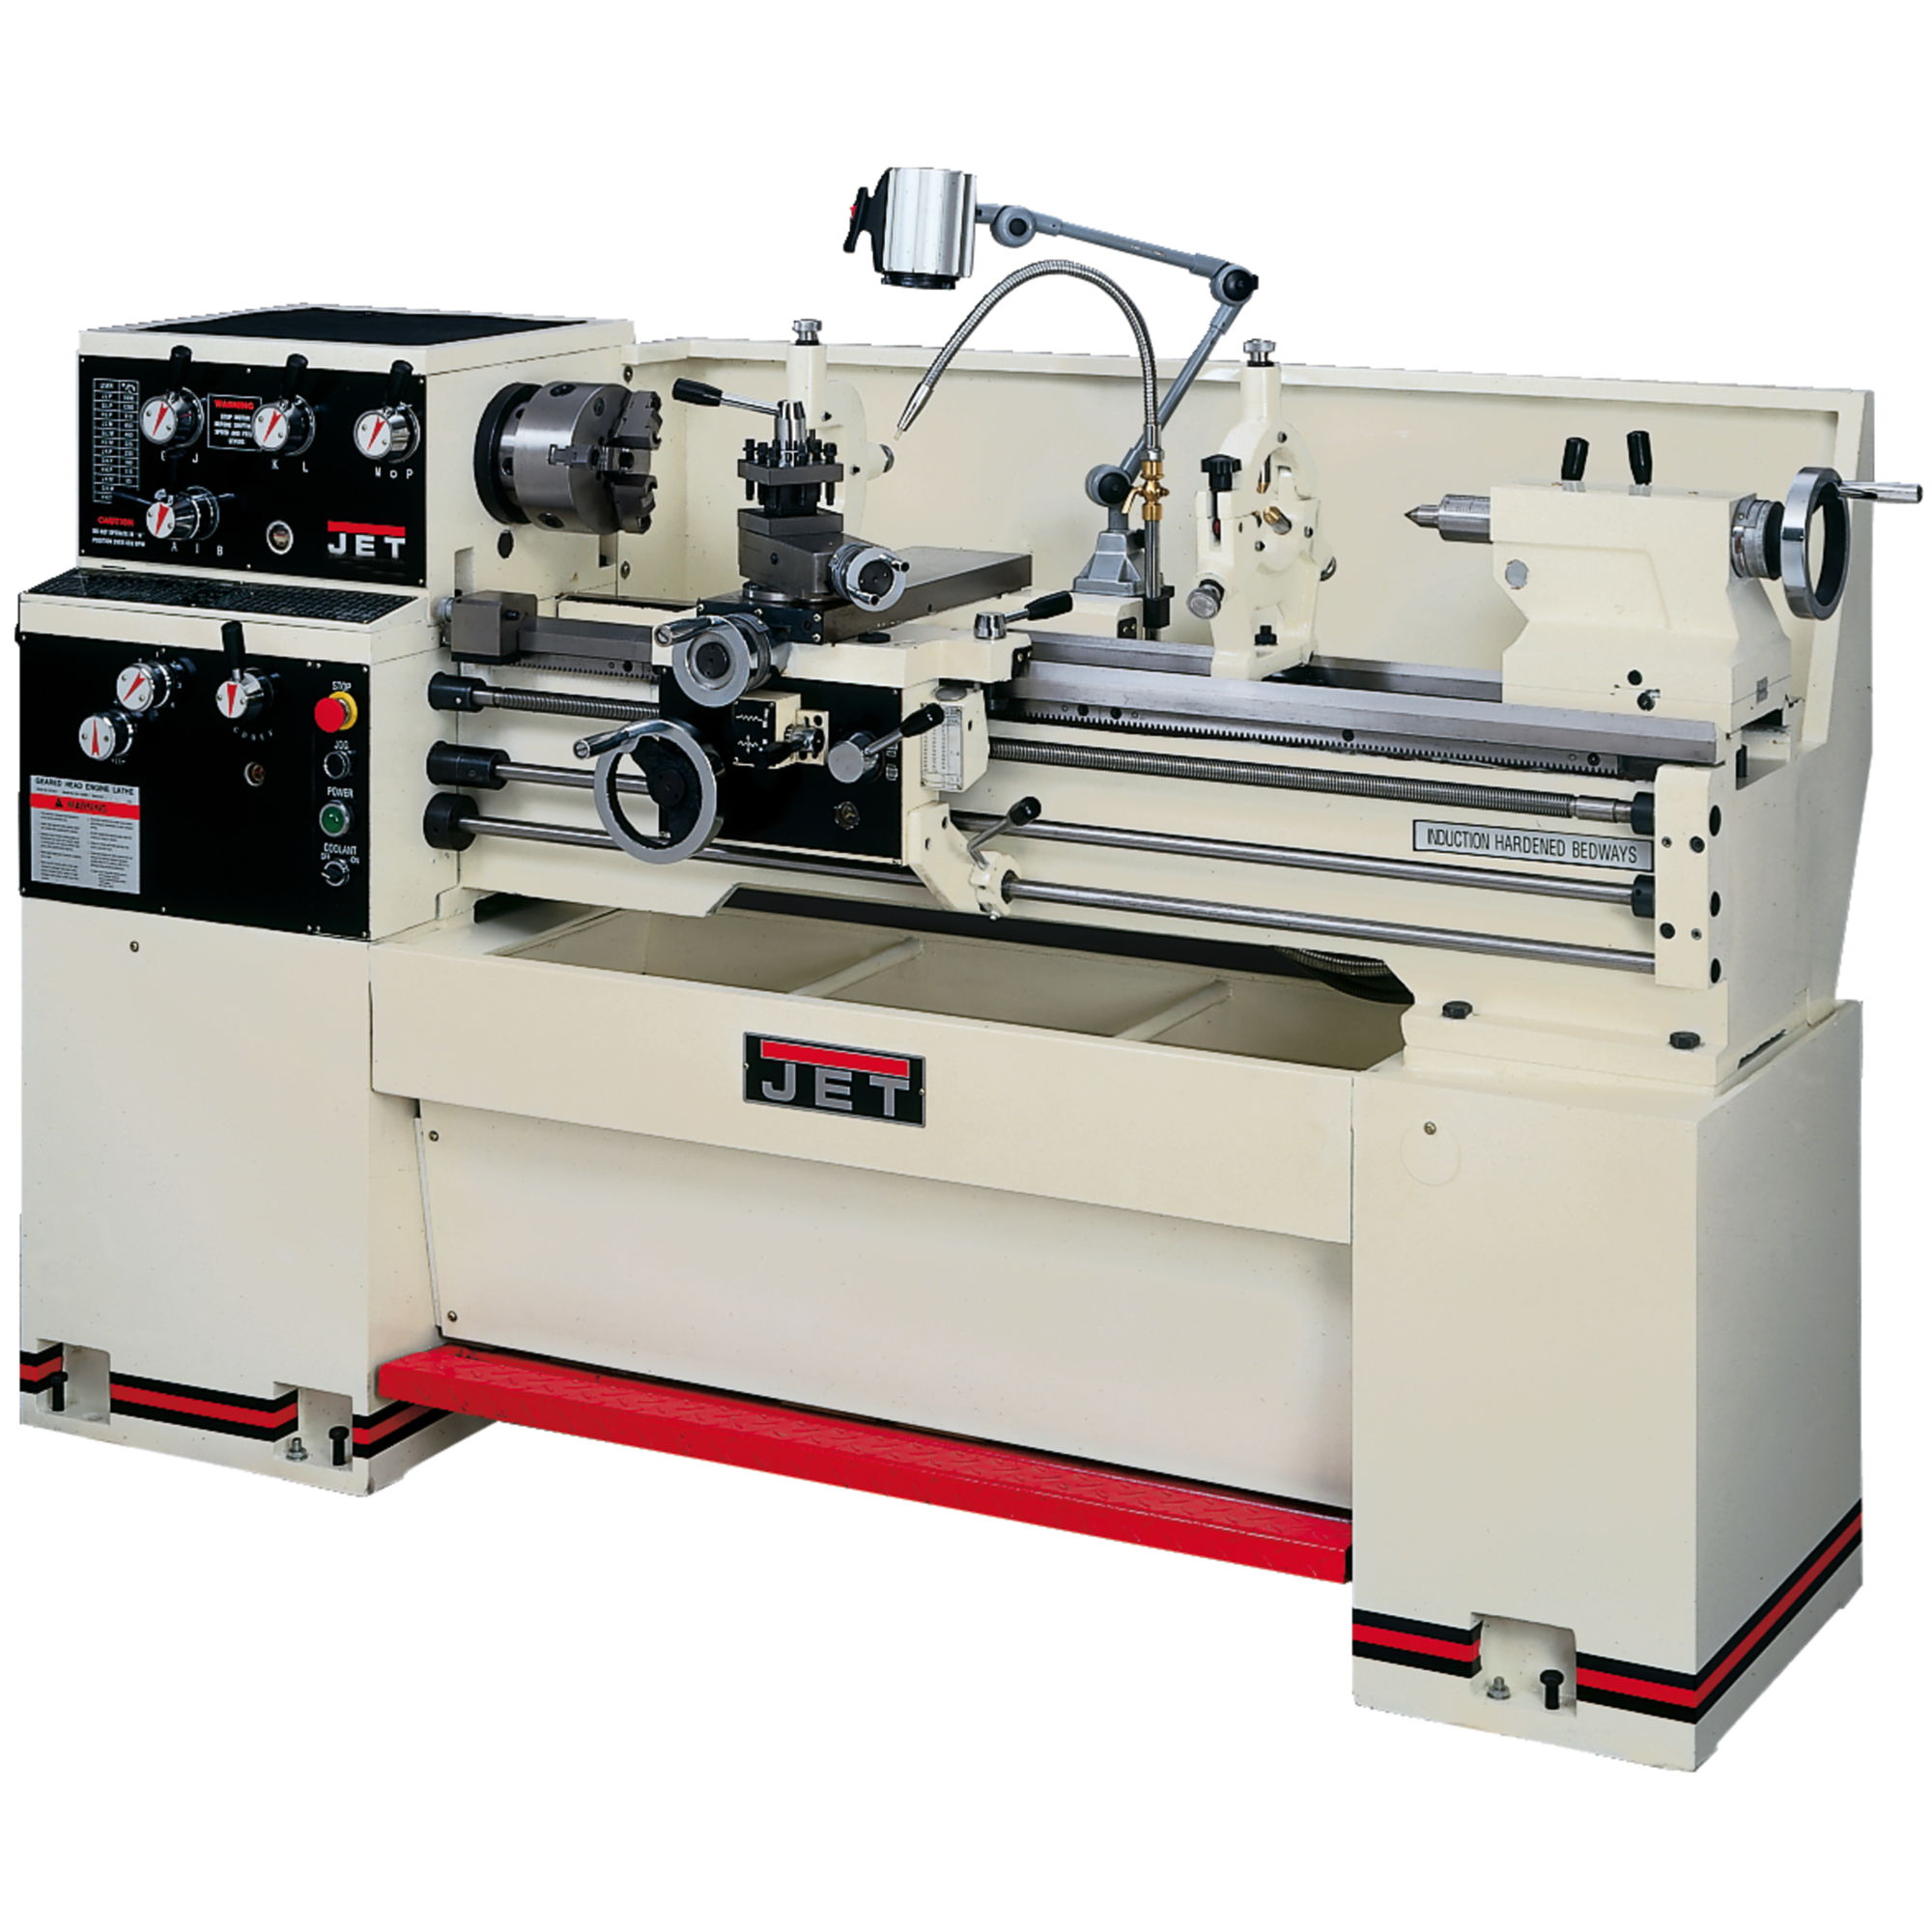 Jet 321548 GH-1440W-1 Lathe with ACU-RITE 200S DRO and Collet Closer Installed